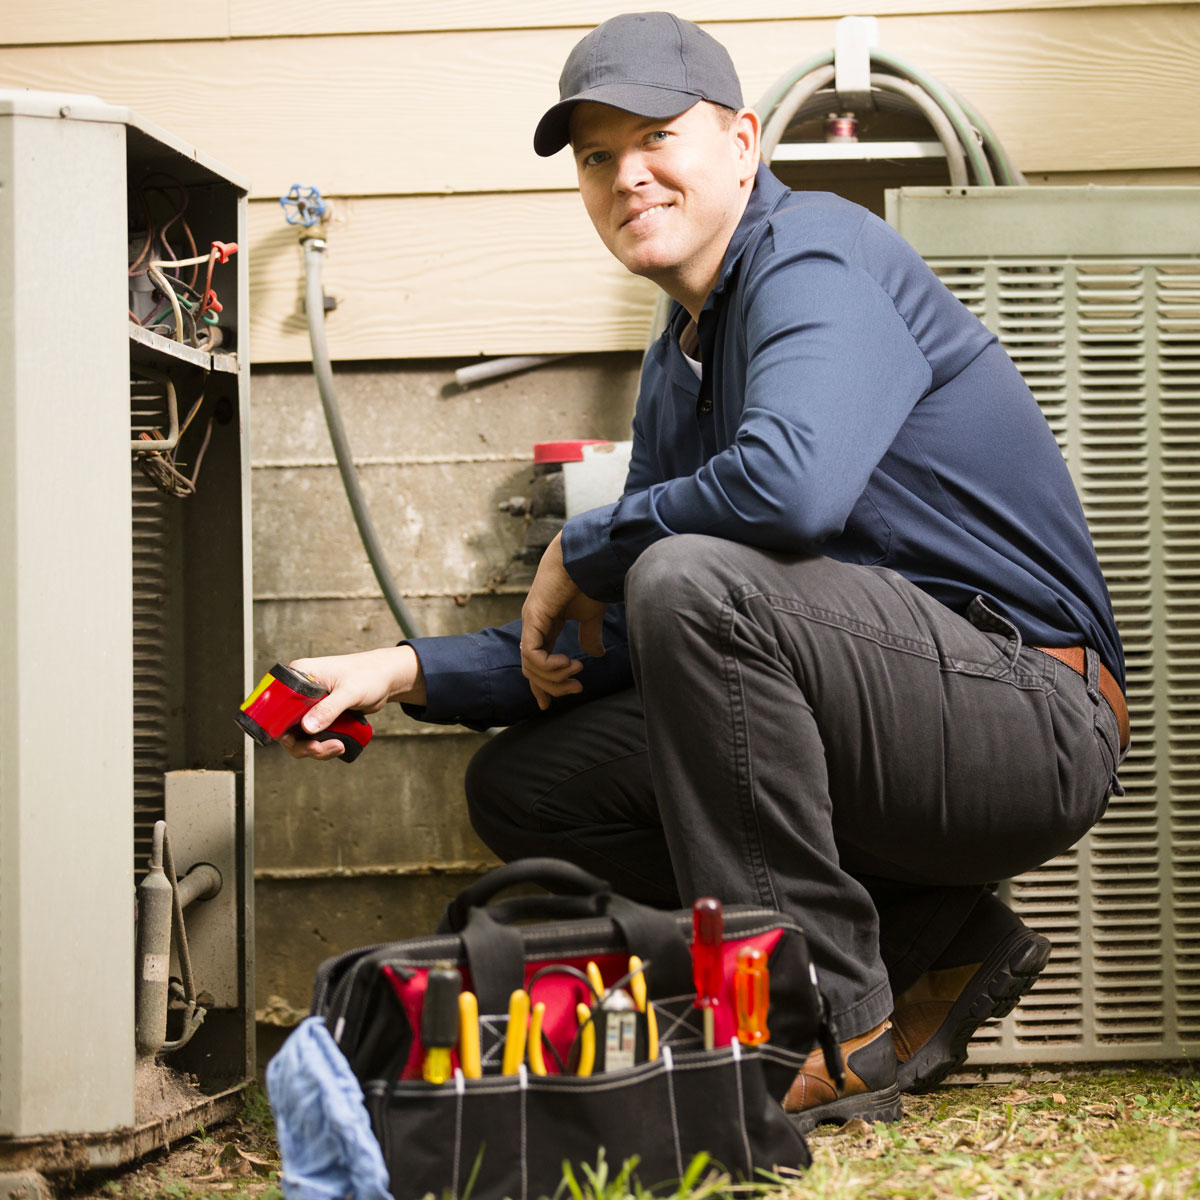 Heating and Air Conditioning Services HVAC in Kansas City